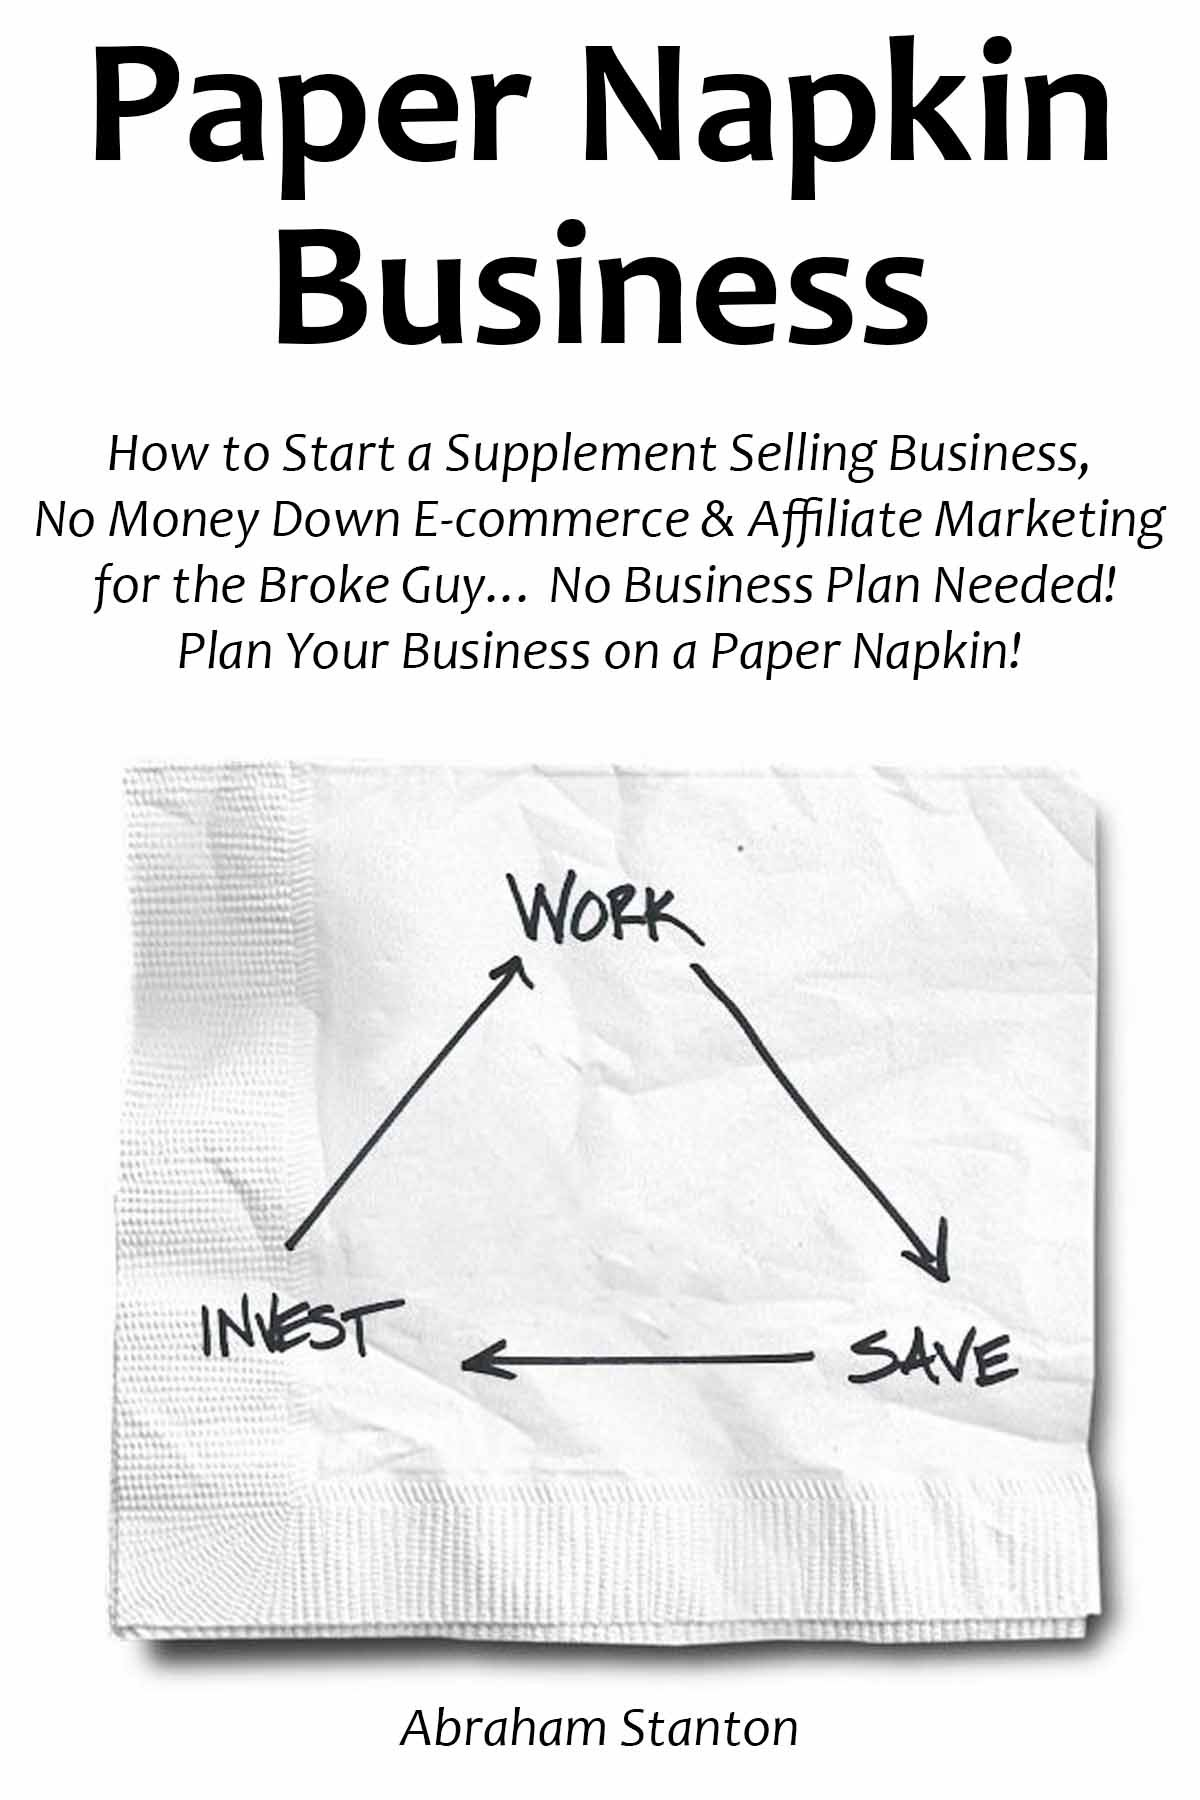 Paper Napkin Business: How to Start a Supplement Selling Business, No Money Down E-commerce & Affiliate Marketing for the Broke Guy… No Business Plan Needed! Plan Your Business on a Paper Napkin!